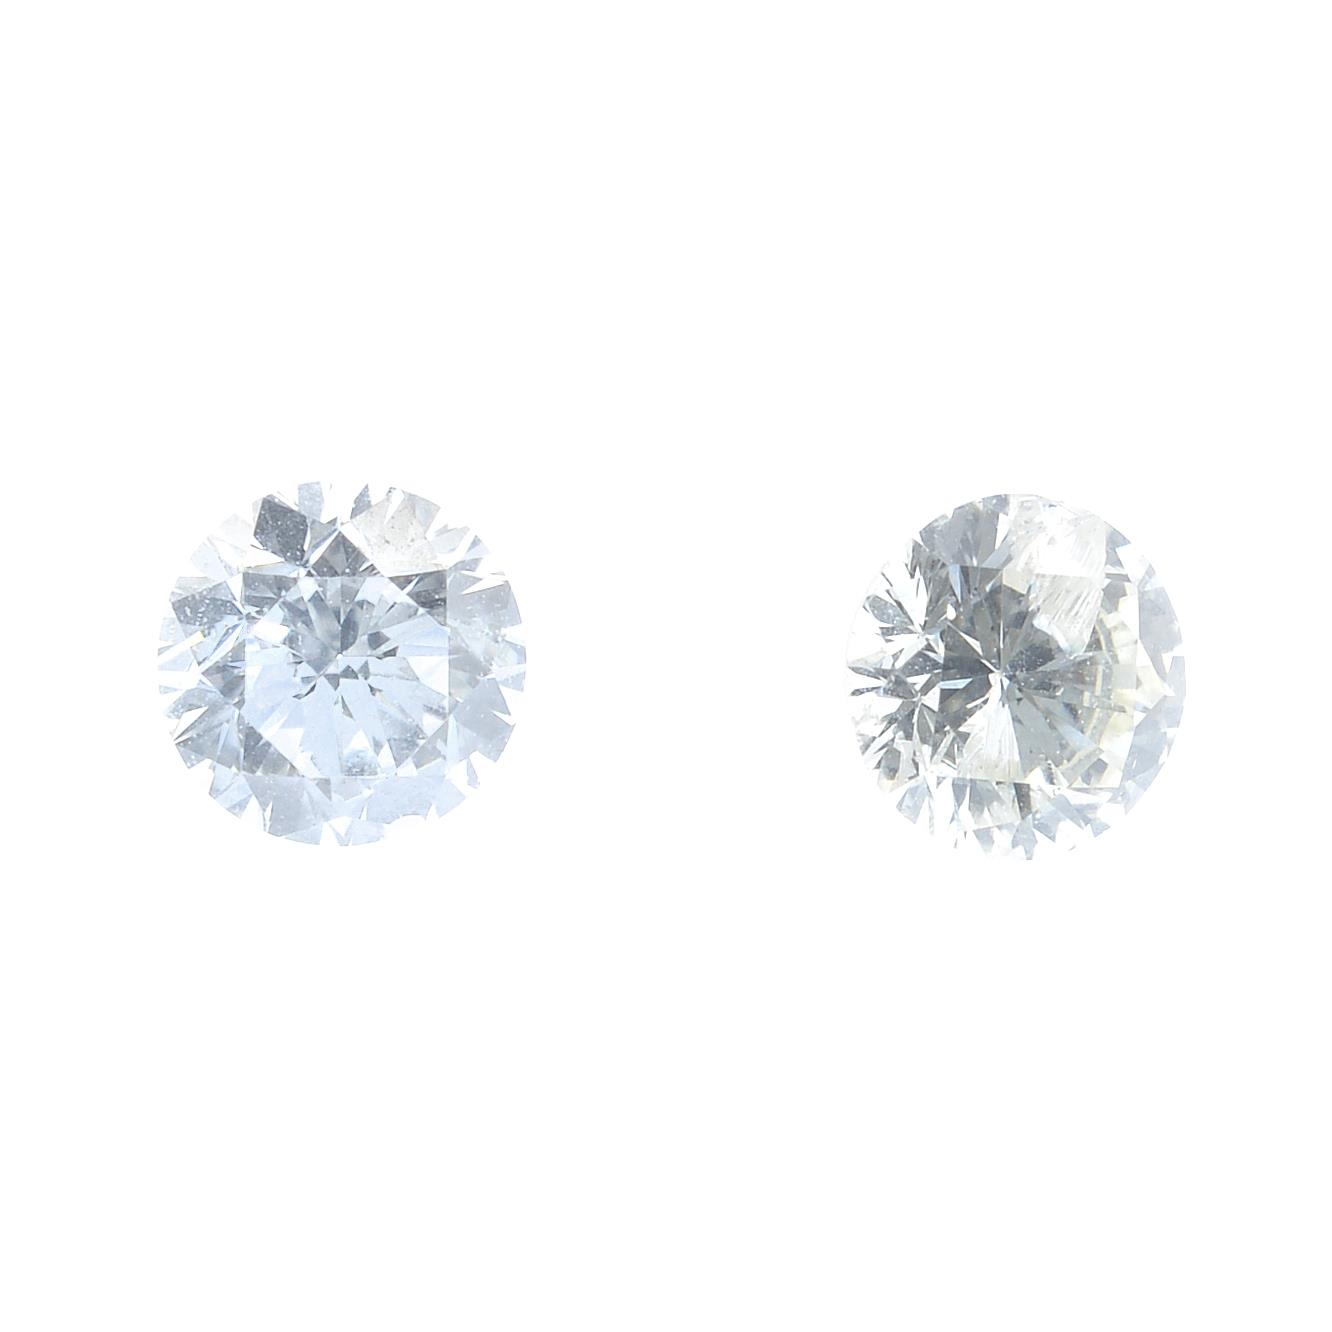 A selection of brilliant, old and single-cut diamonds, total weight 3.96cts.